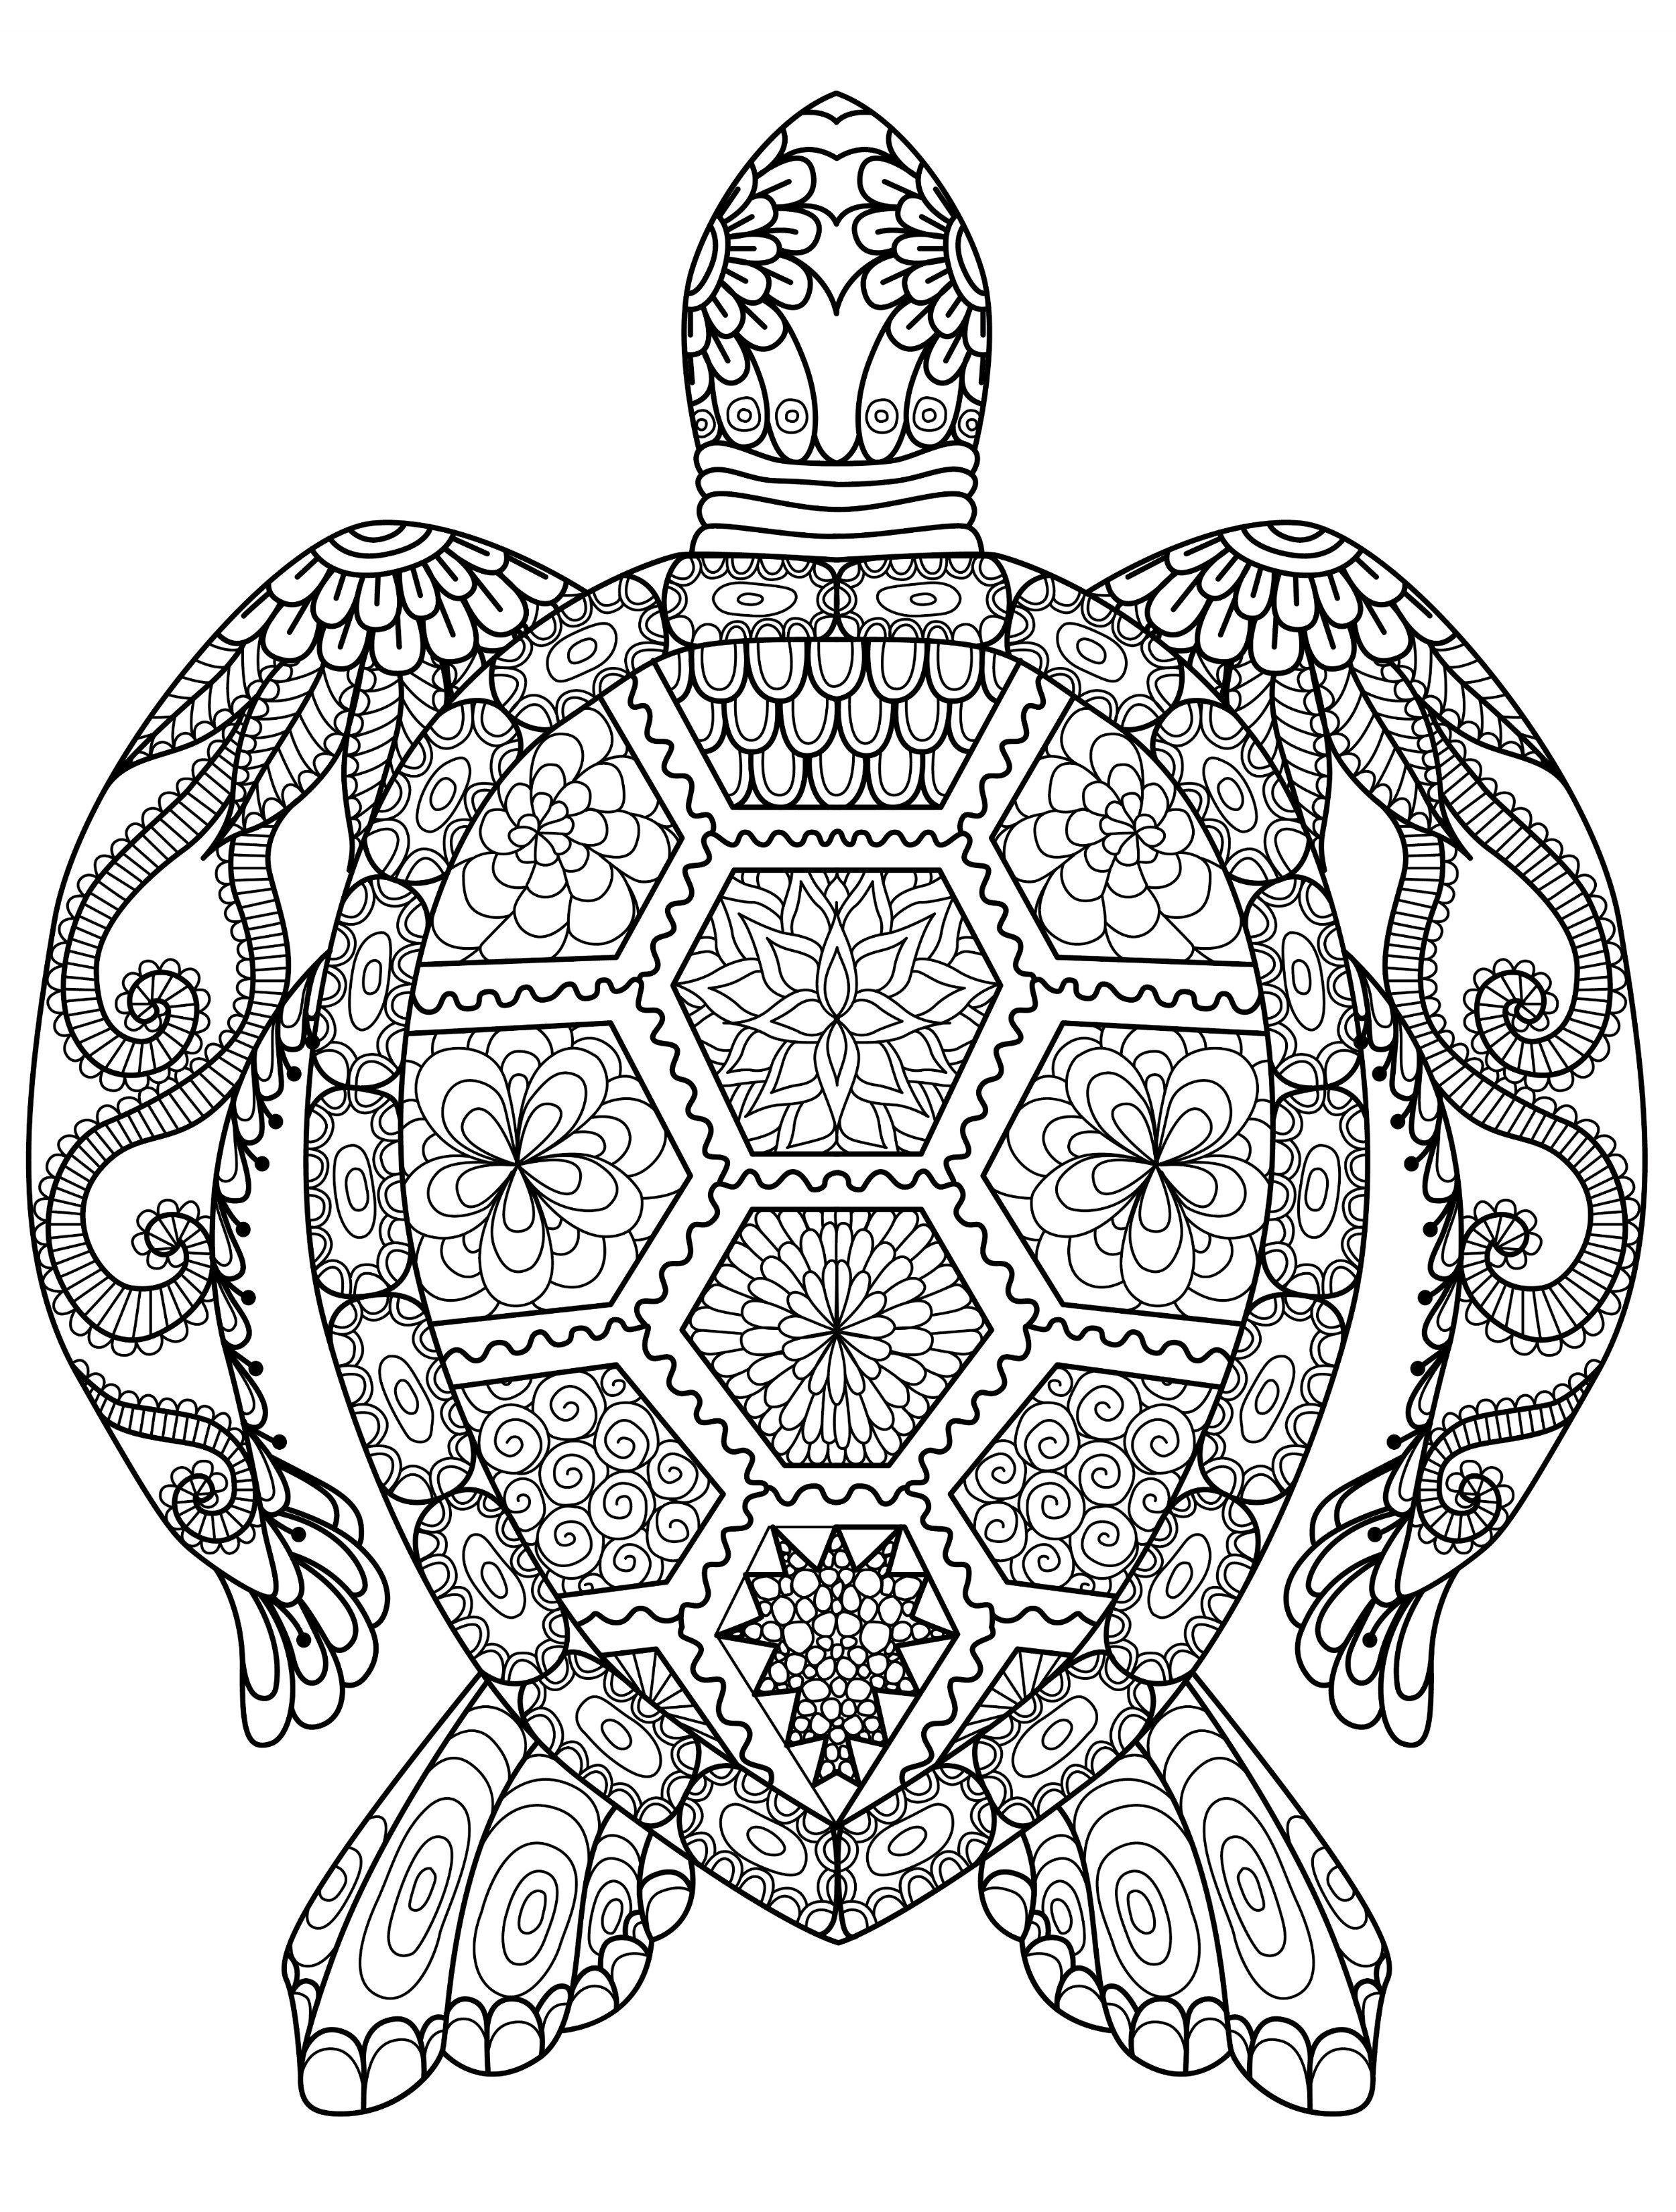 Grown Up Coloring Pages Printable At Getdrawings Com Free